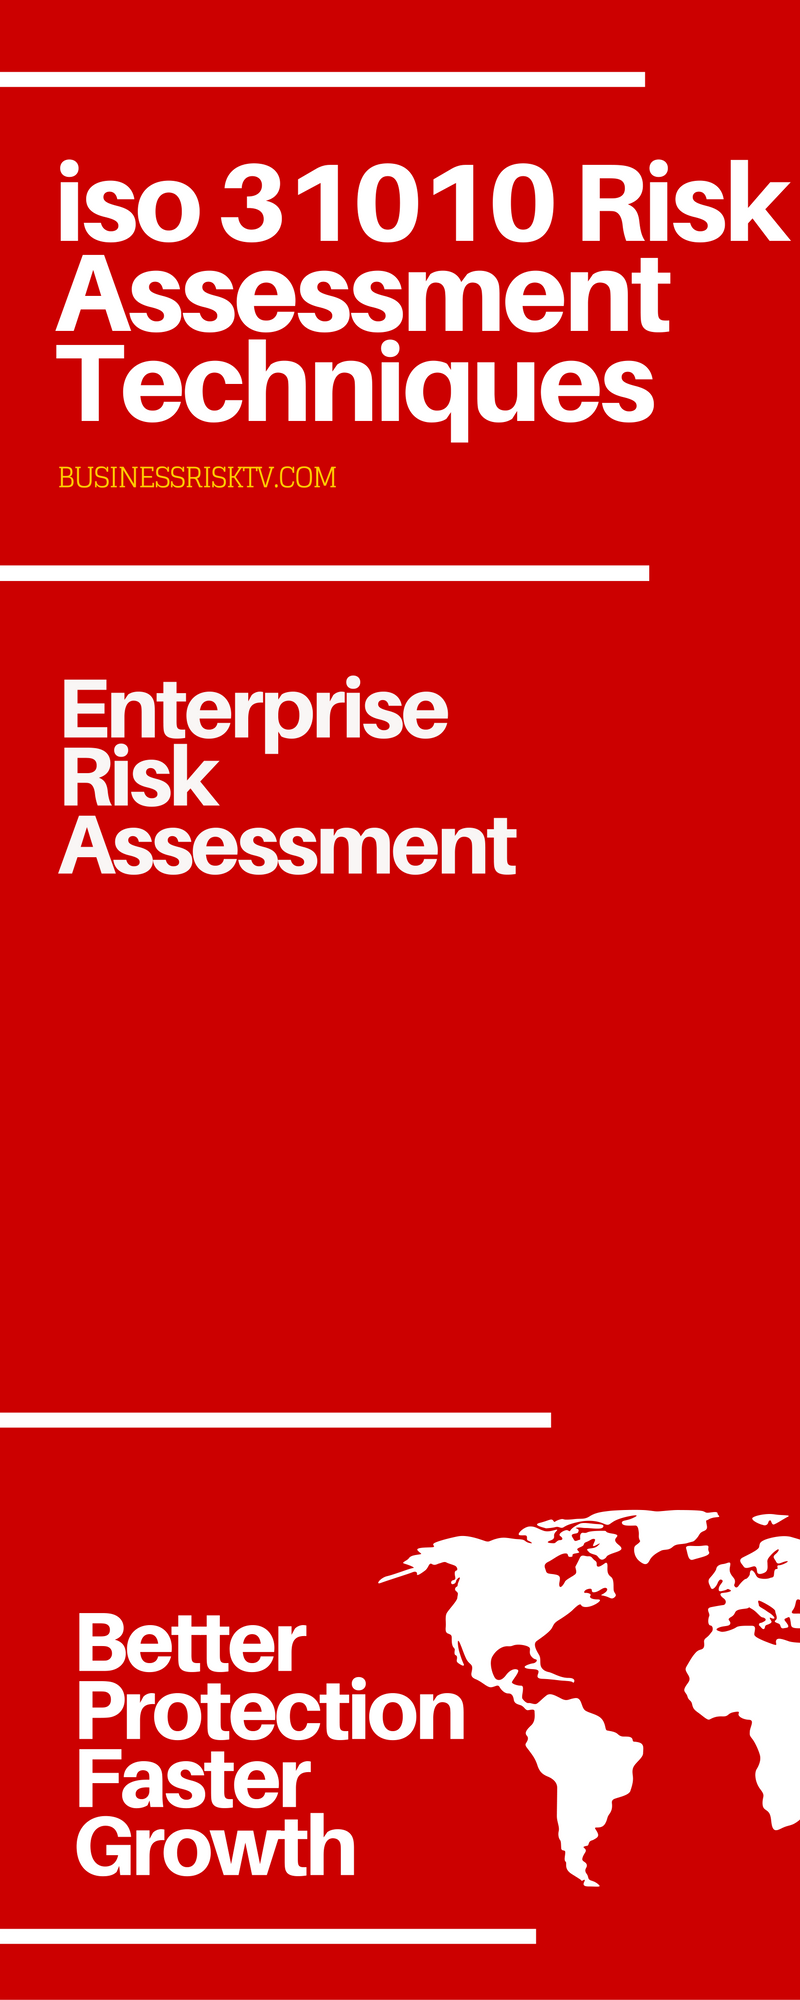 iso 31010 Risk Assessment Training Advice Tips BusinessRiskTV.com